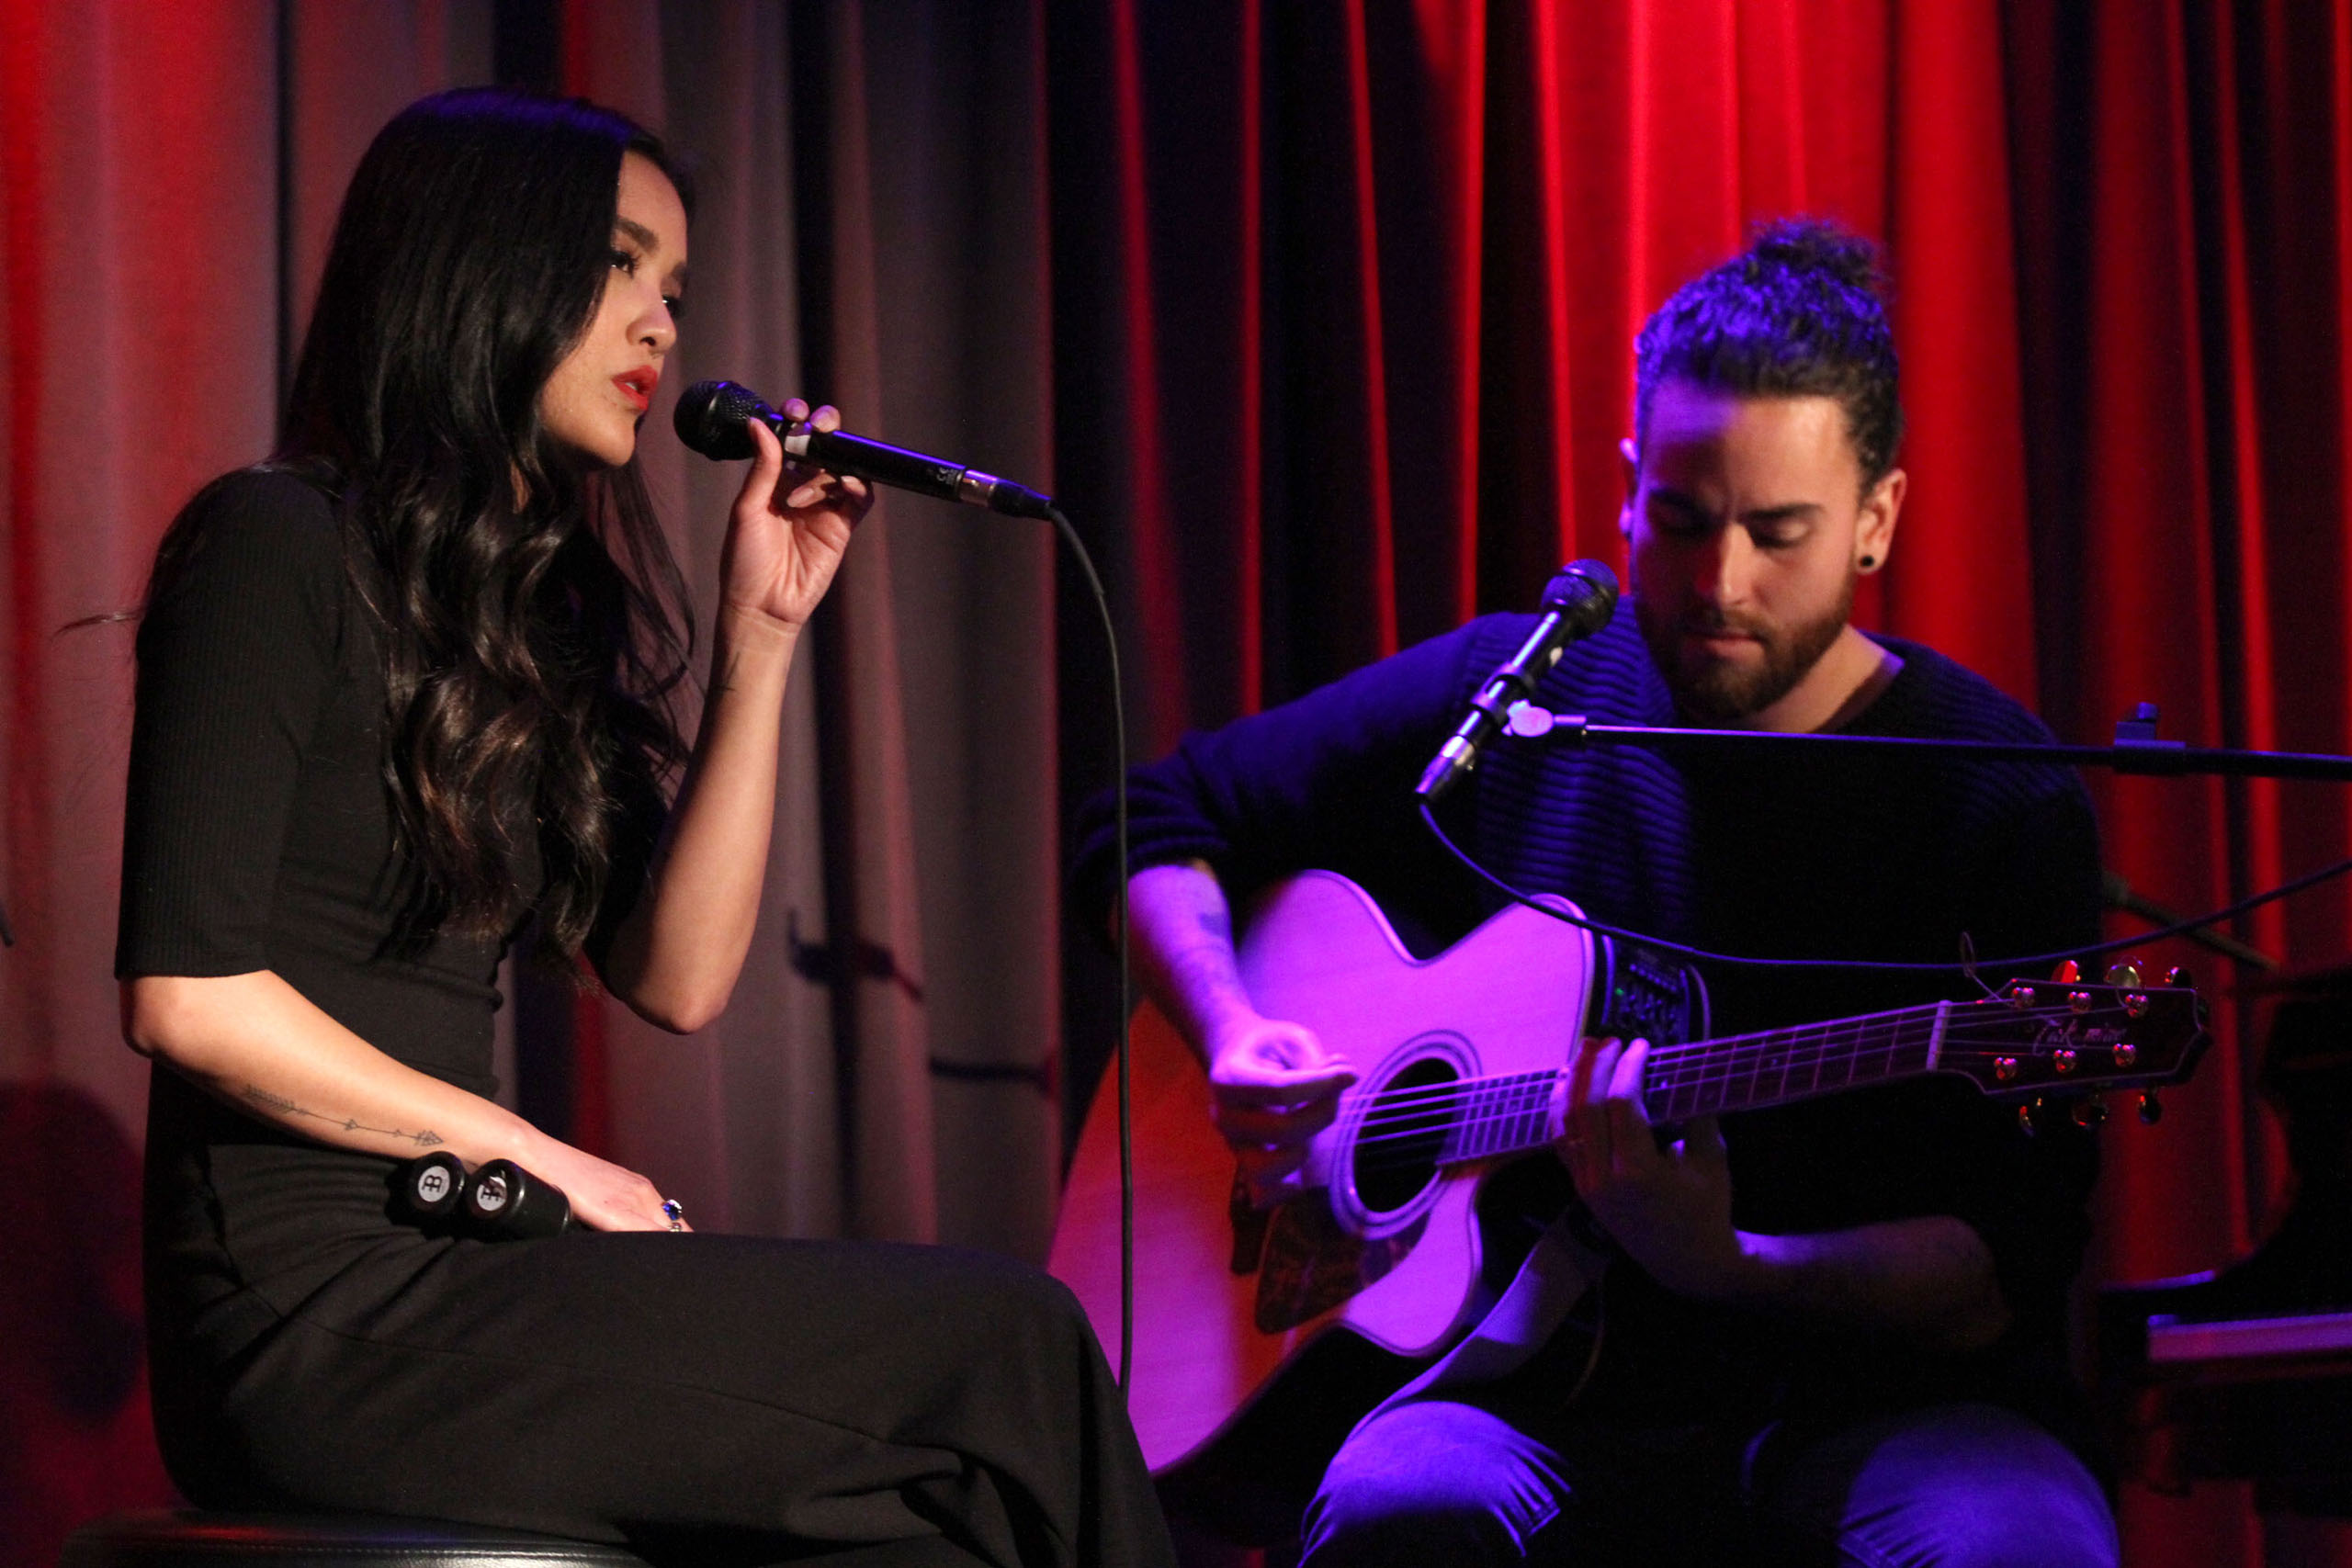 Musicians Carissa Alvarado and Michael  Alvarado of Us the Duo perform at The GRAMMY Museum in Los Angeles, California, on Dec. 14, 2016.